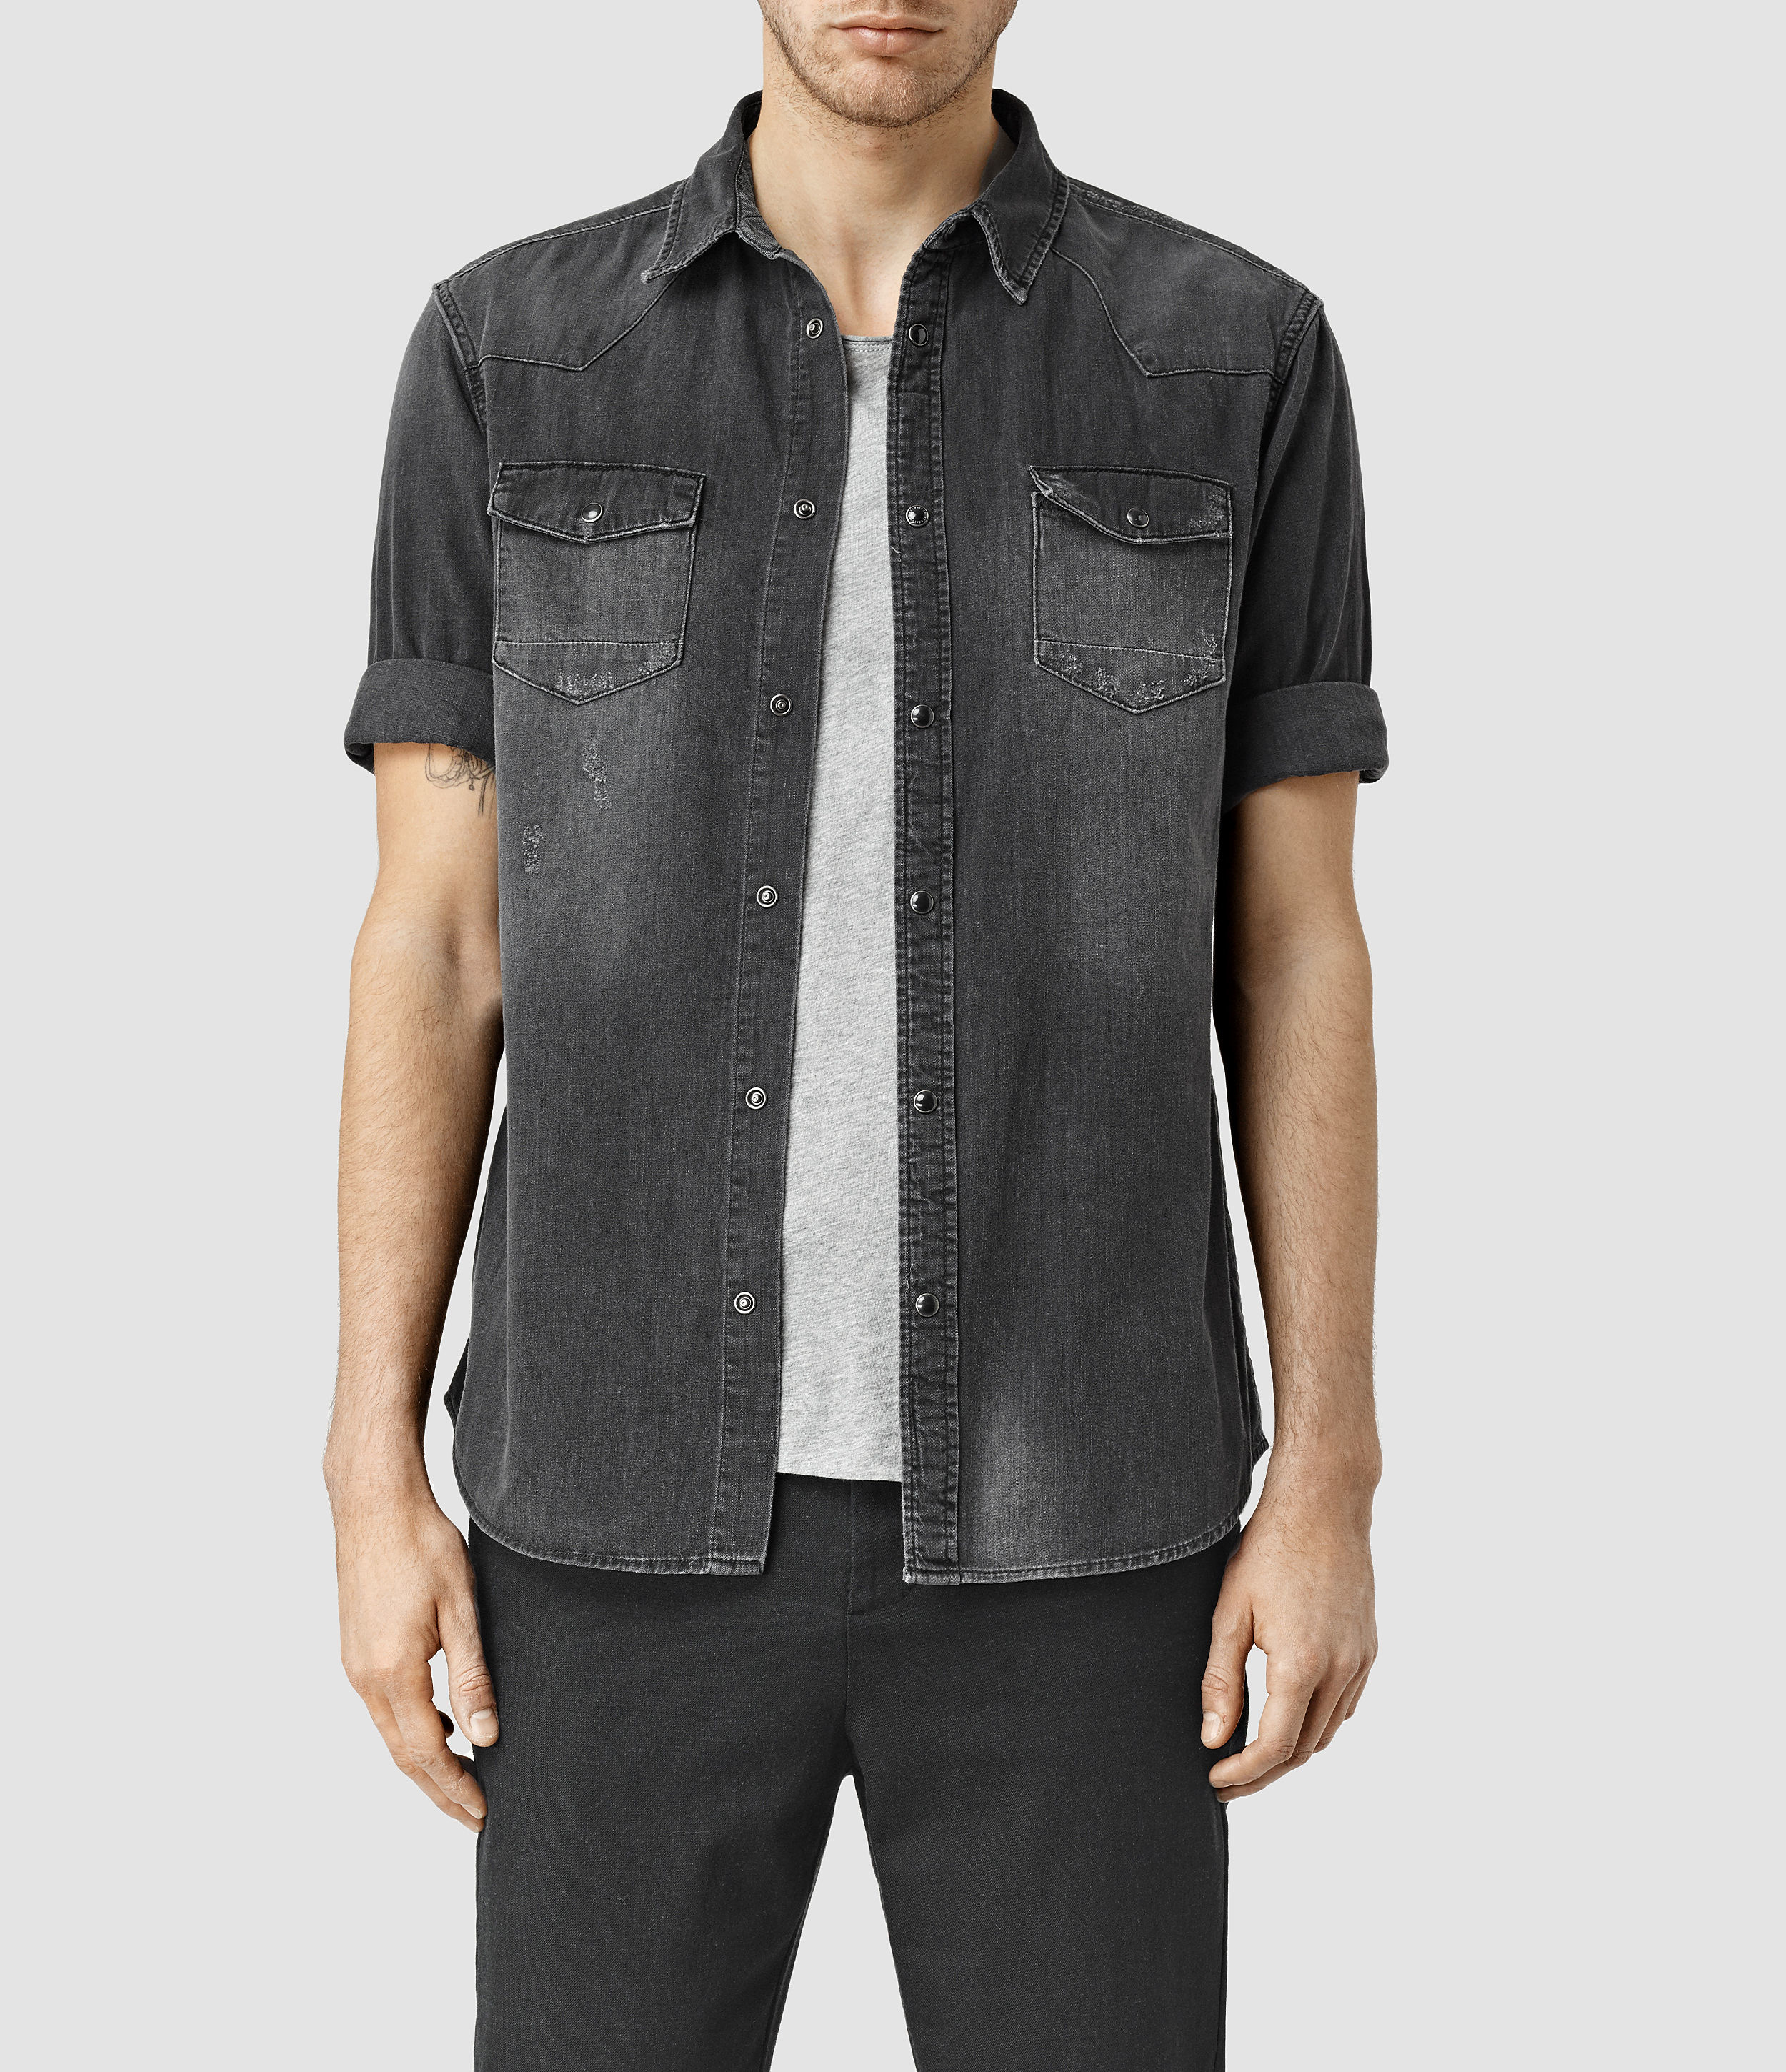 Allsaints Marilla Half Sleeve Denim Shirt In Black For Men